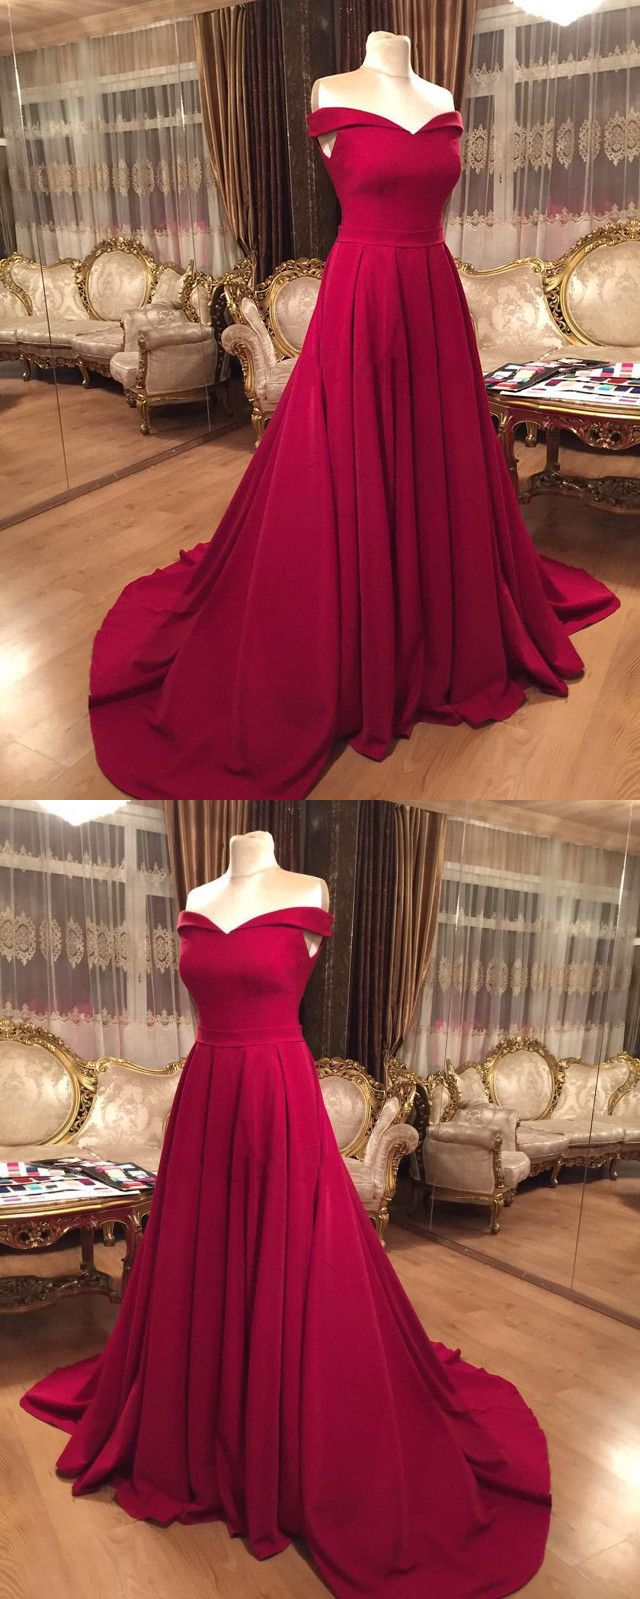 Night Cheap dresses pictures forecasting to wear in summer in 2019